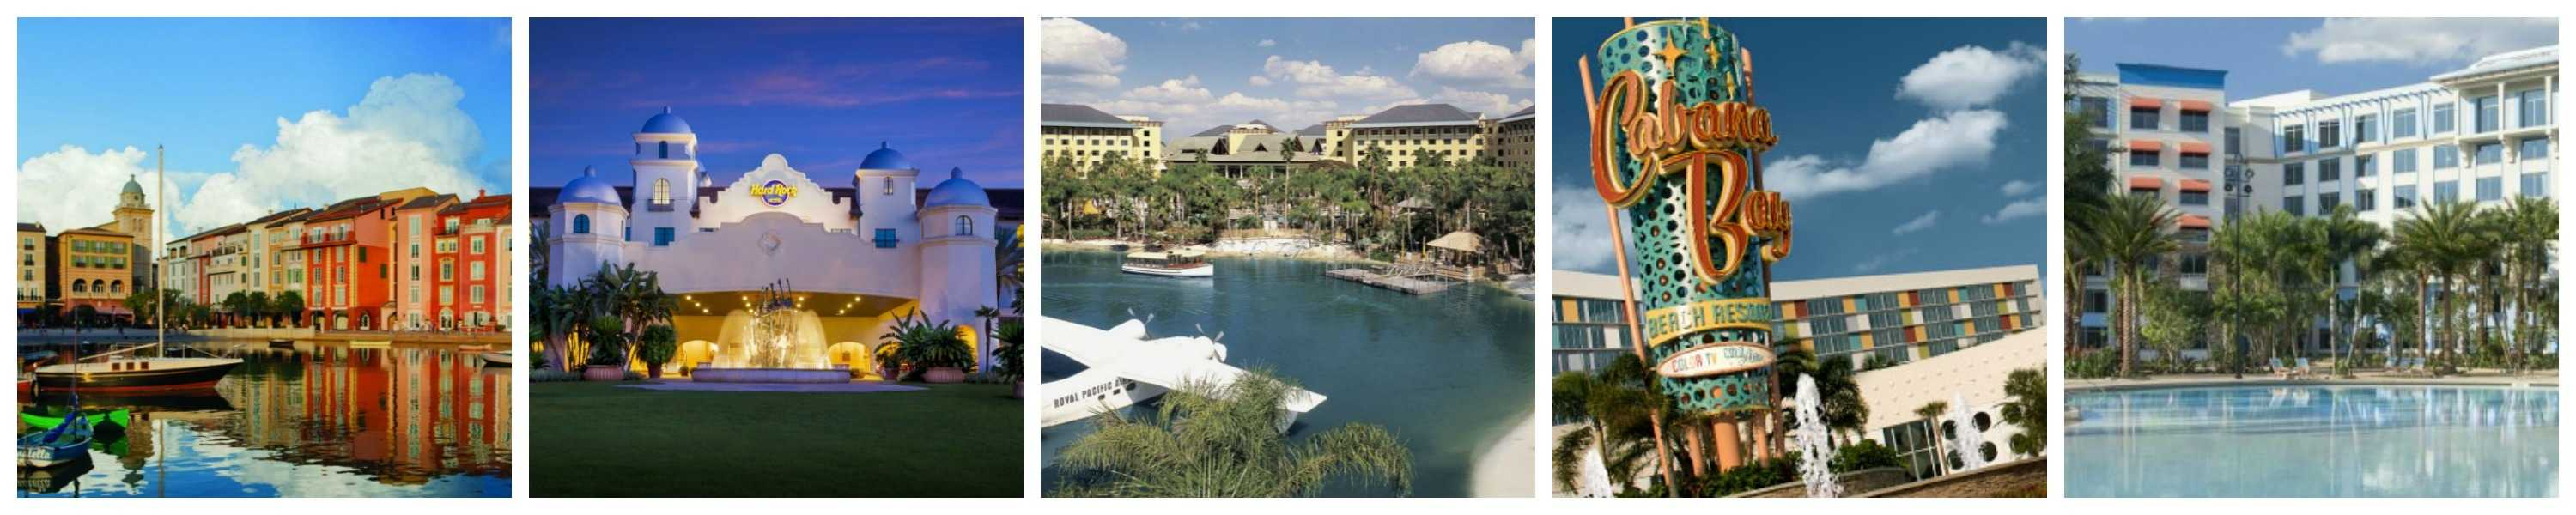 Universal's sixth hotel: Everything we know